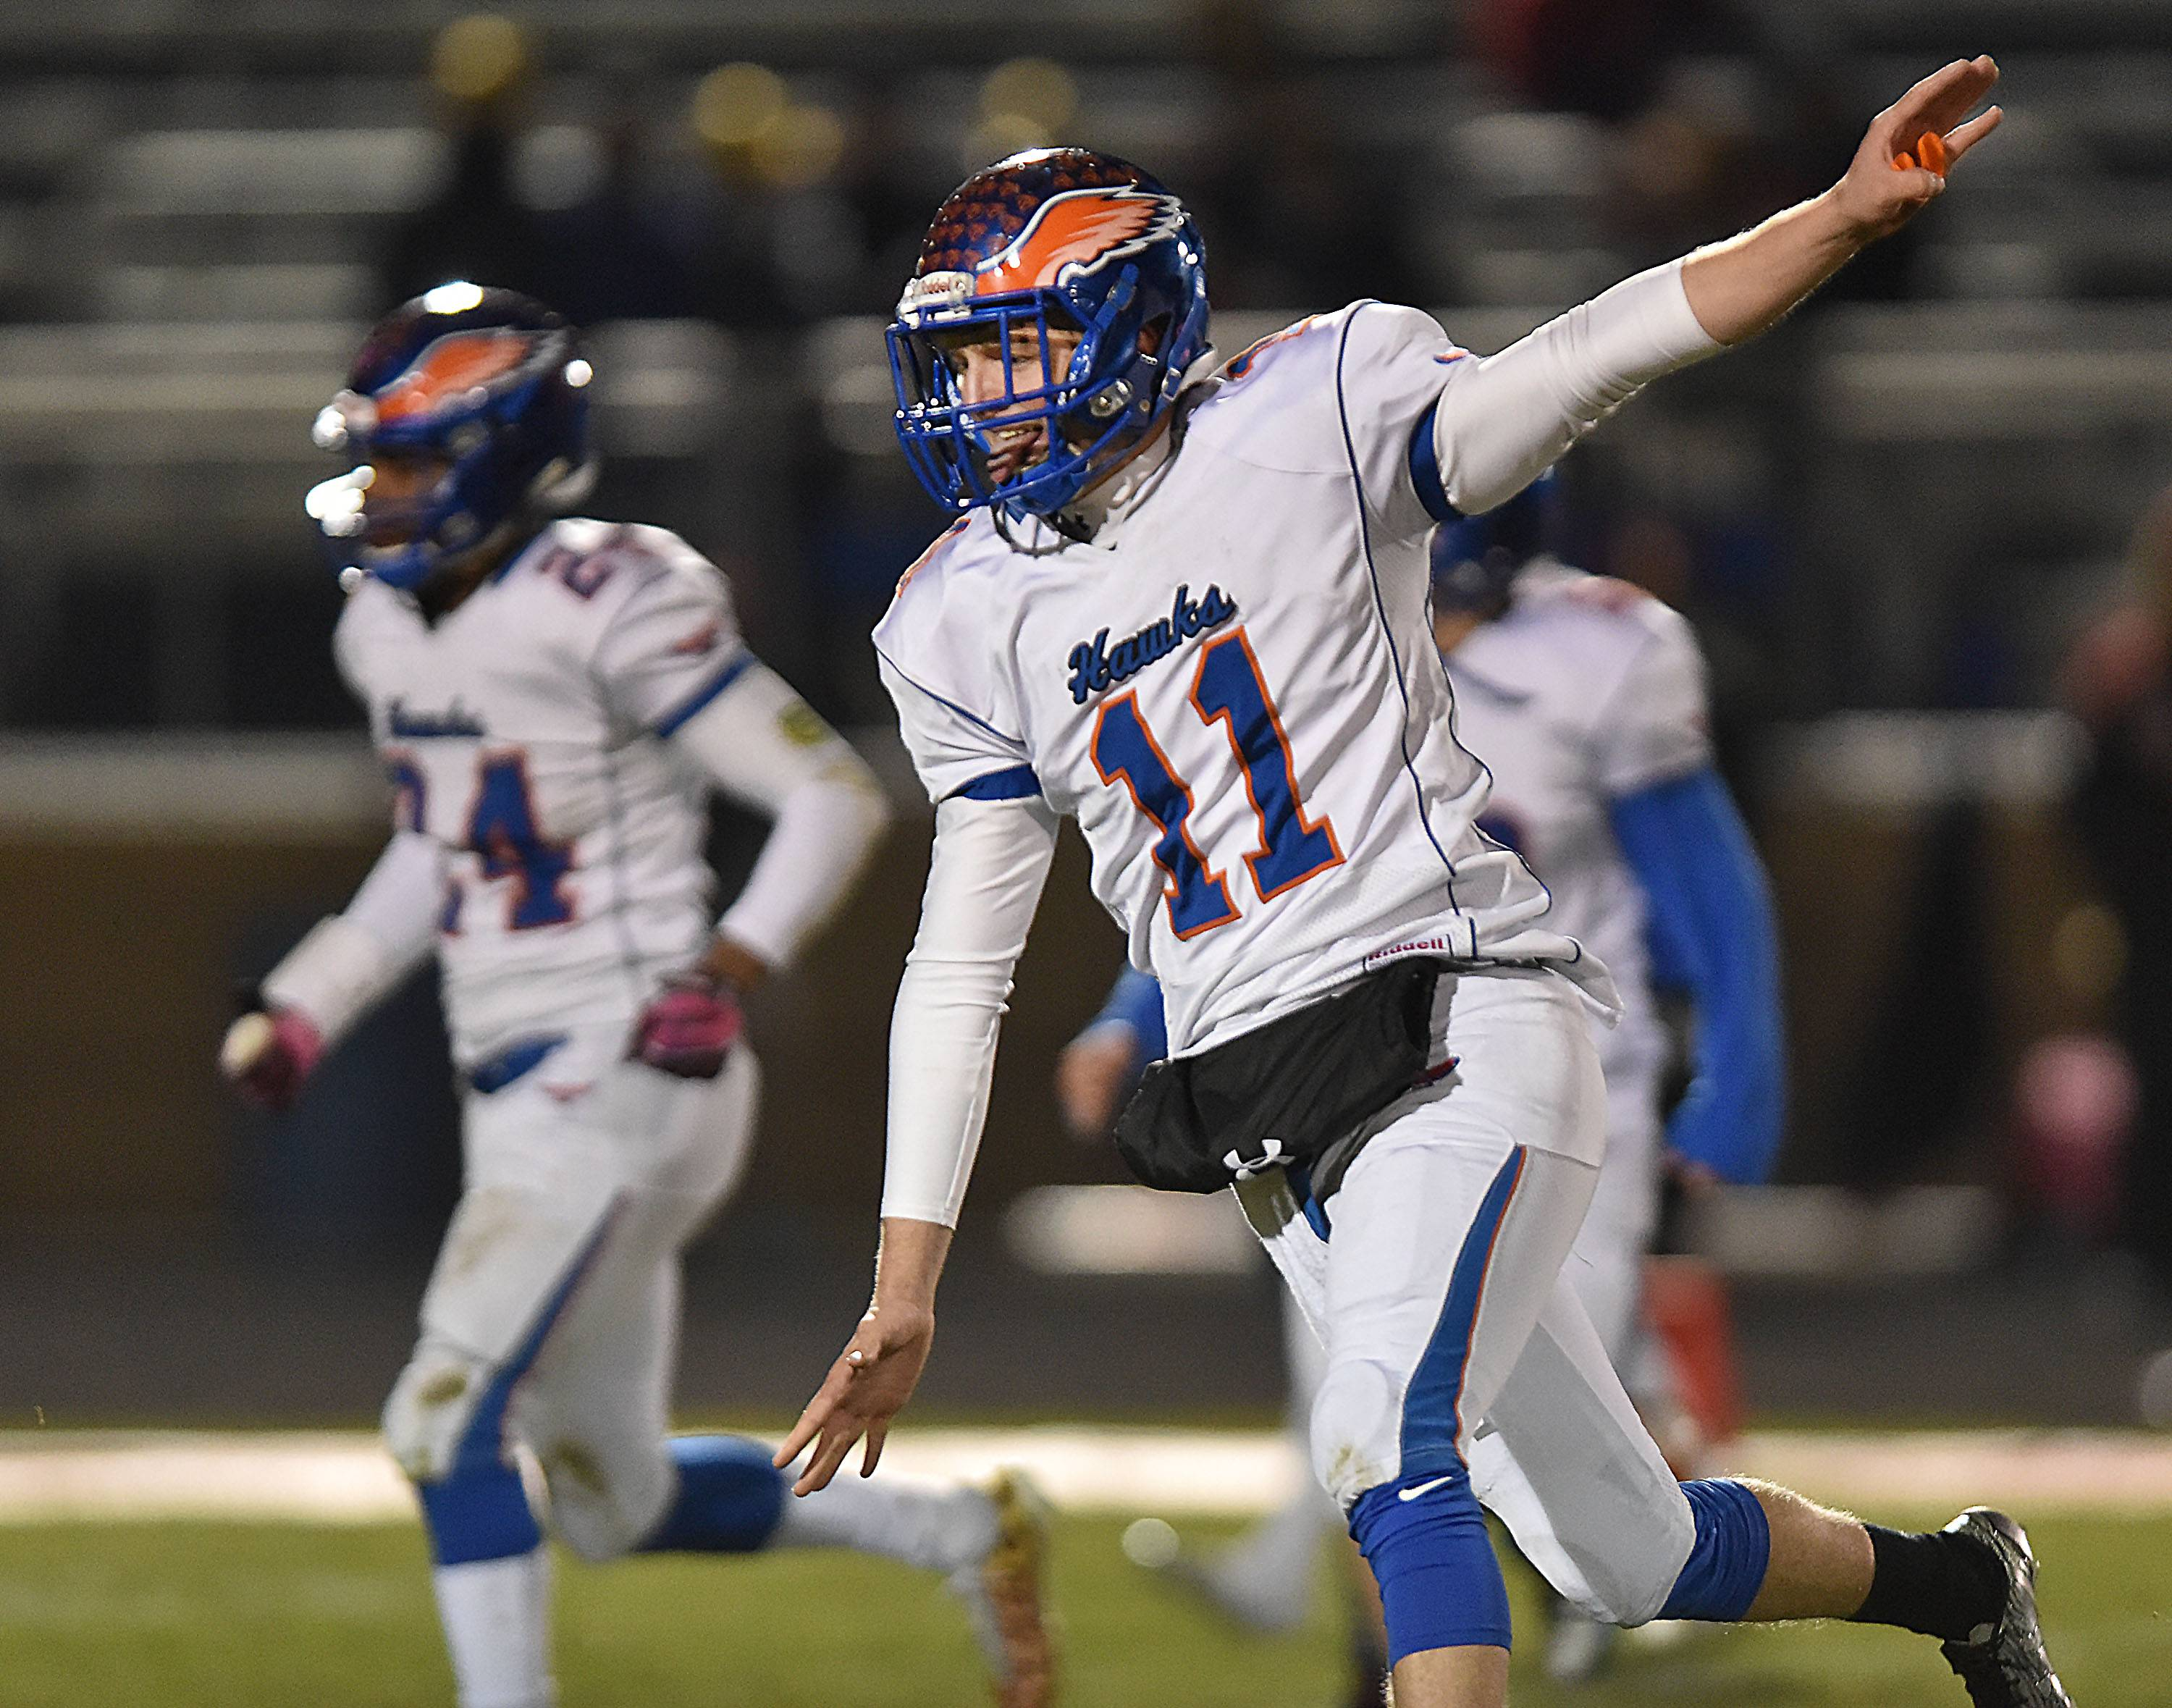 Hoffman Estates quarterback Austin Coalson celebrates the Hawks' win against Belvidere North last Saturday in the state quarterfinal game in Belvidere.